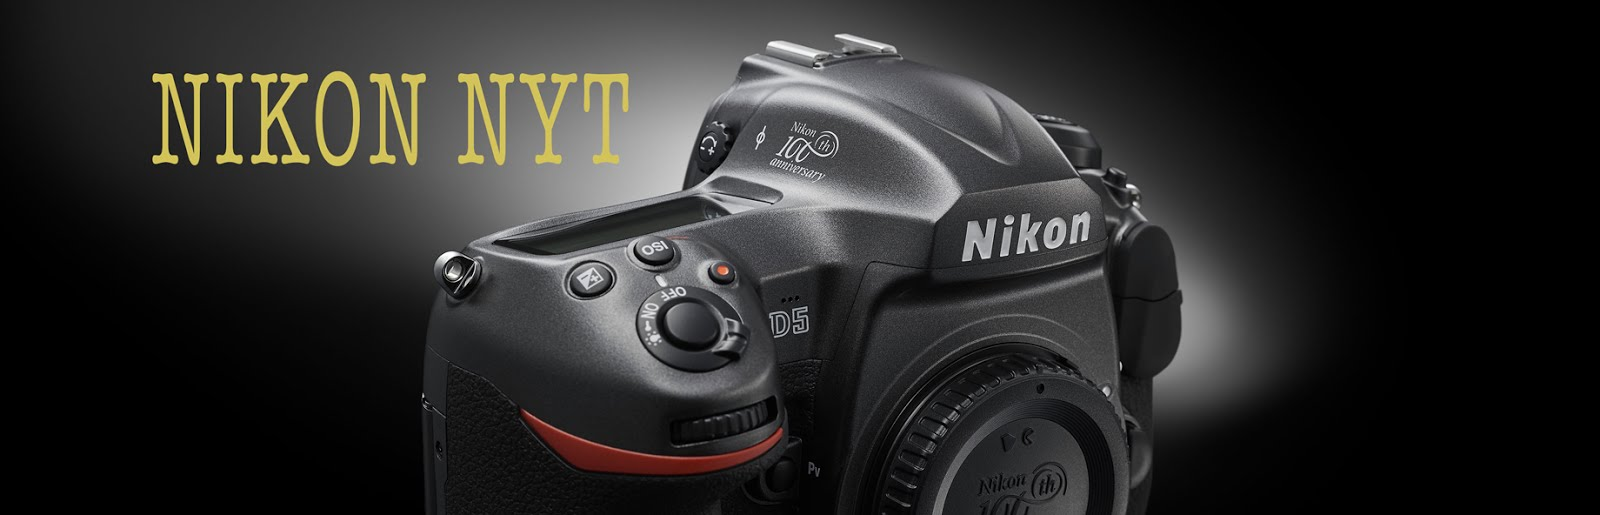 Nikon Nyt